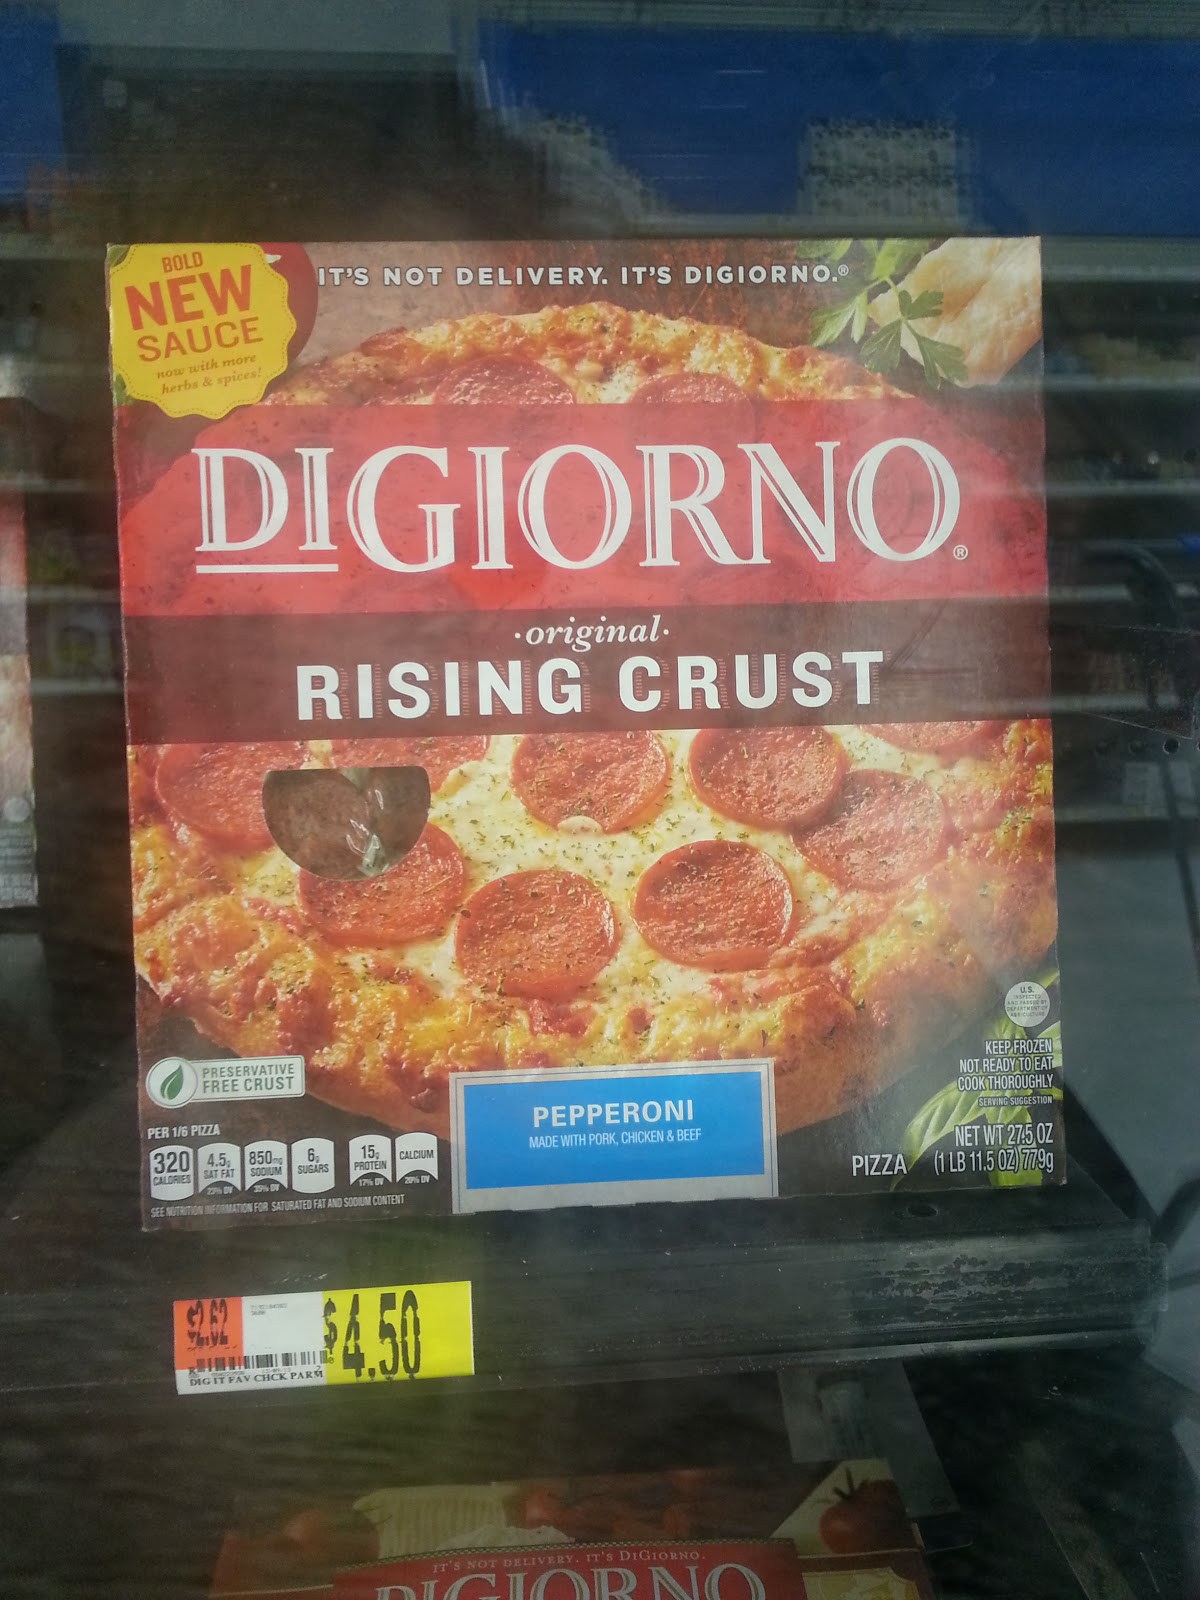 $4.50 a pie rollback prices for Digiorno pizza at Walmart